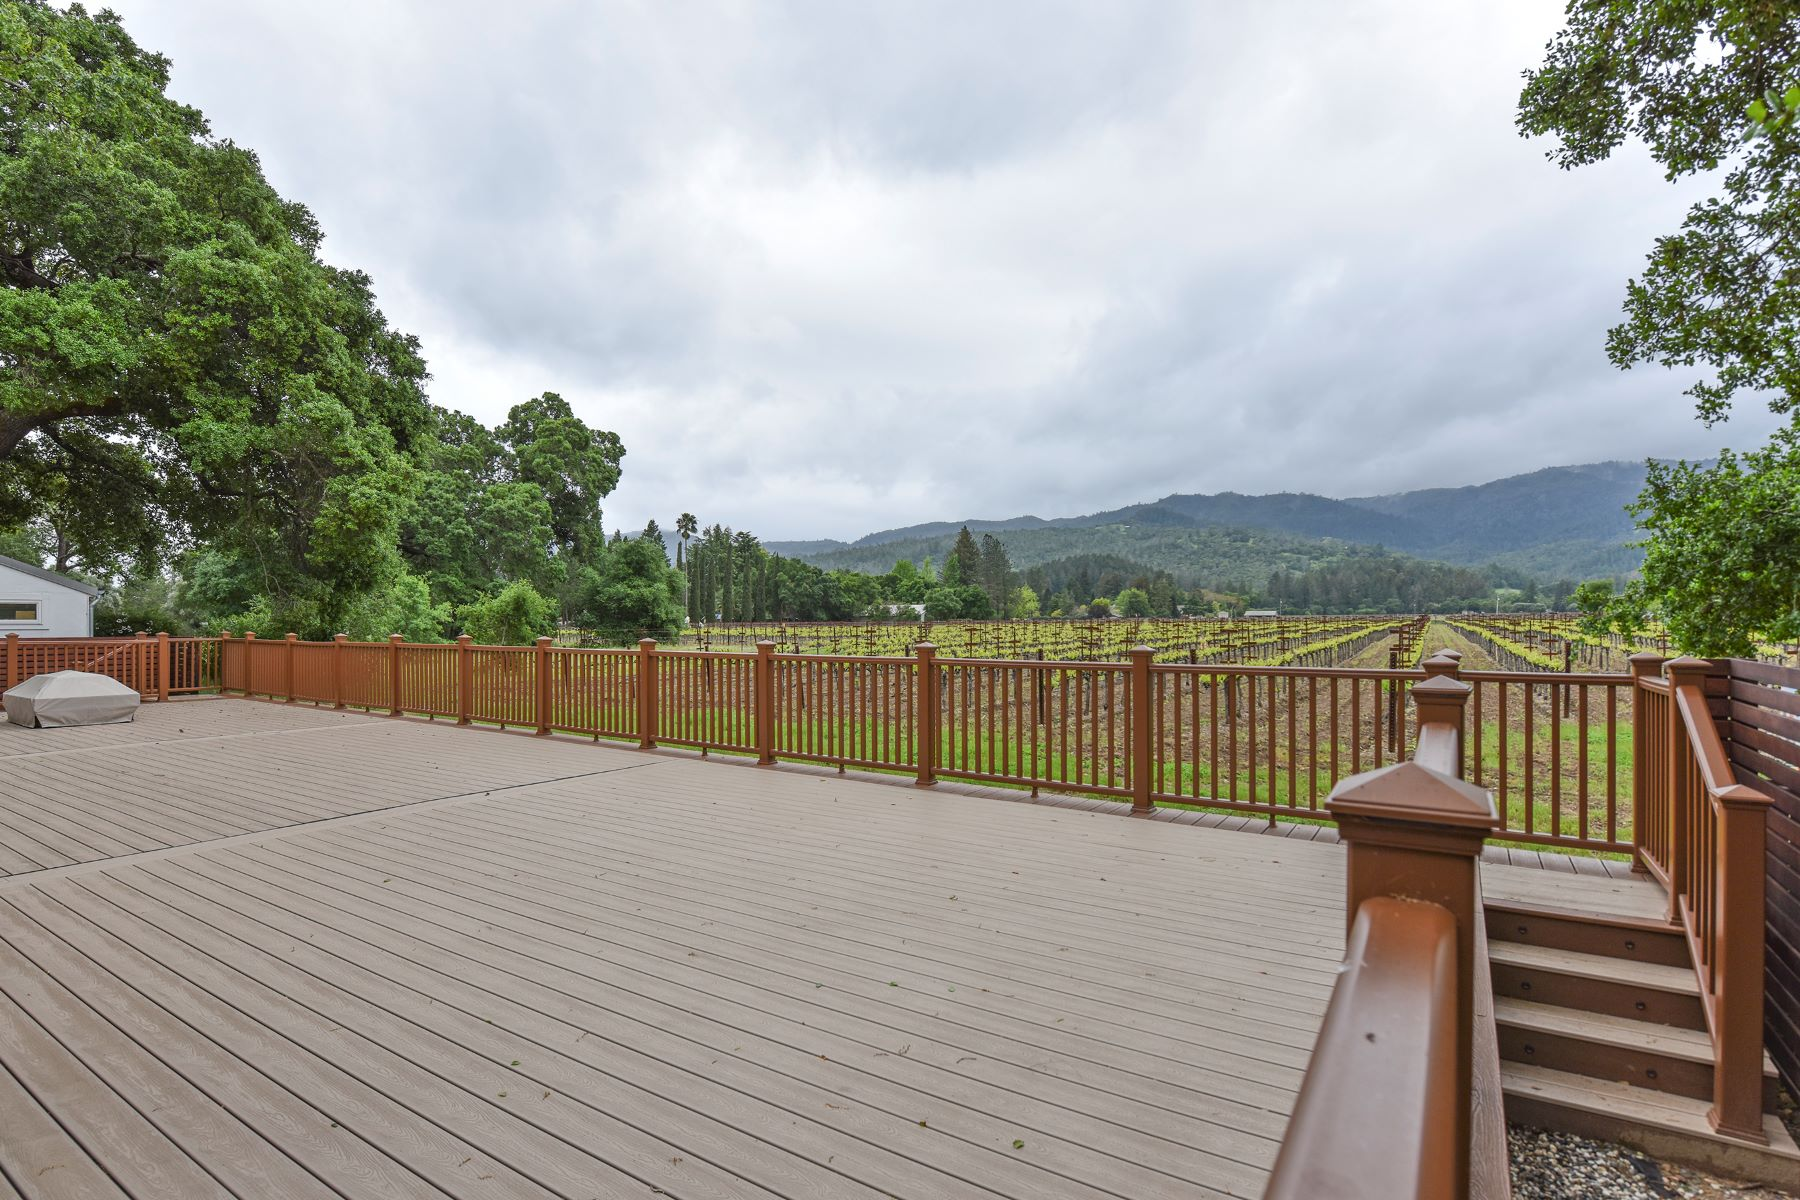 Single Family Home for Sale at A Refined Craftsman Home That Commands Vineyard and Mountain Views 109 Dahlia Street St. Helena, California, 94574 United States